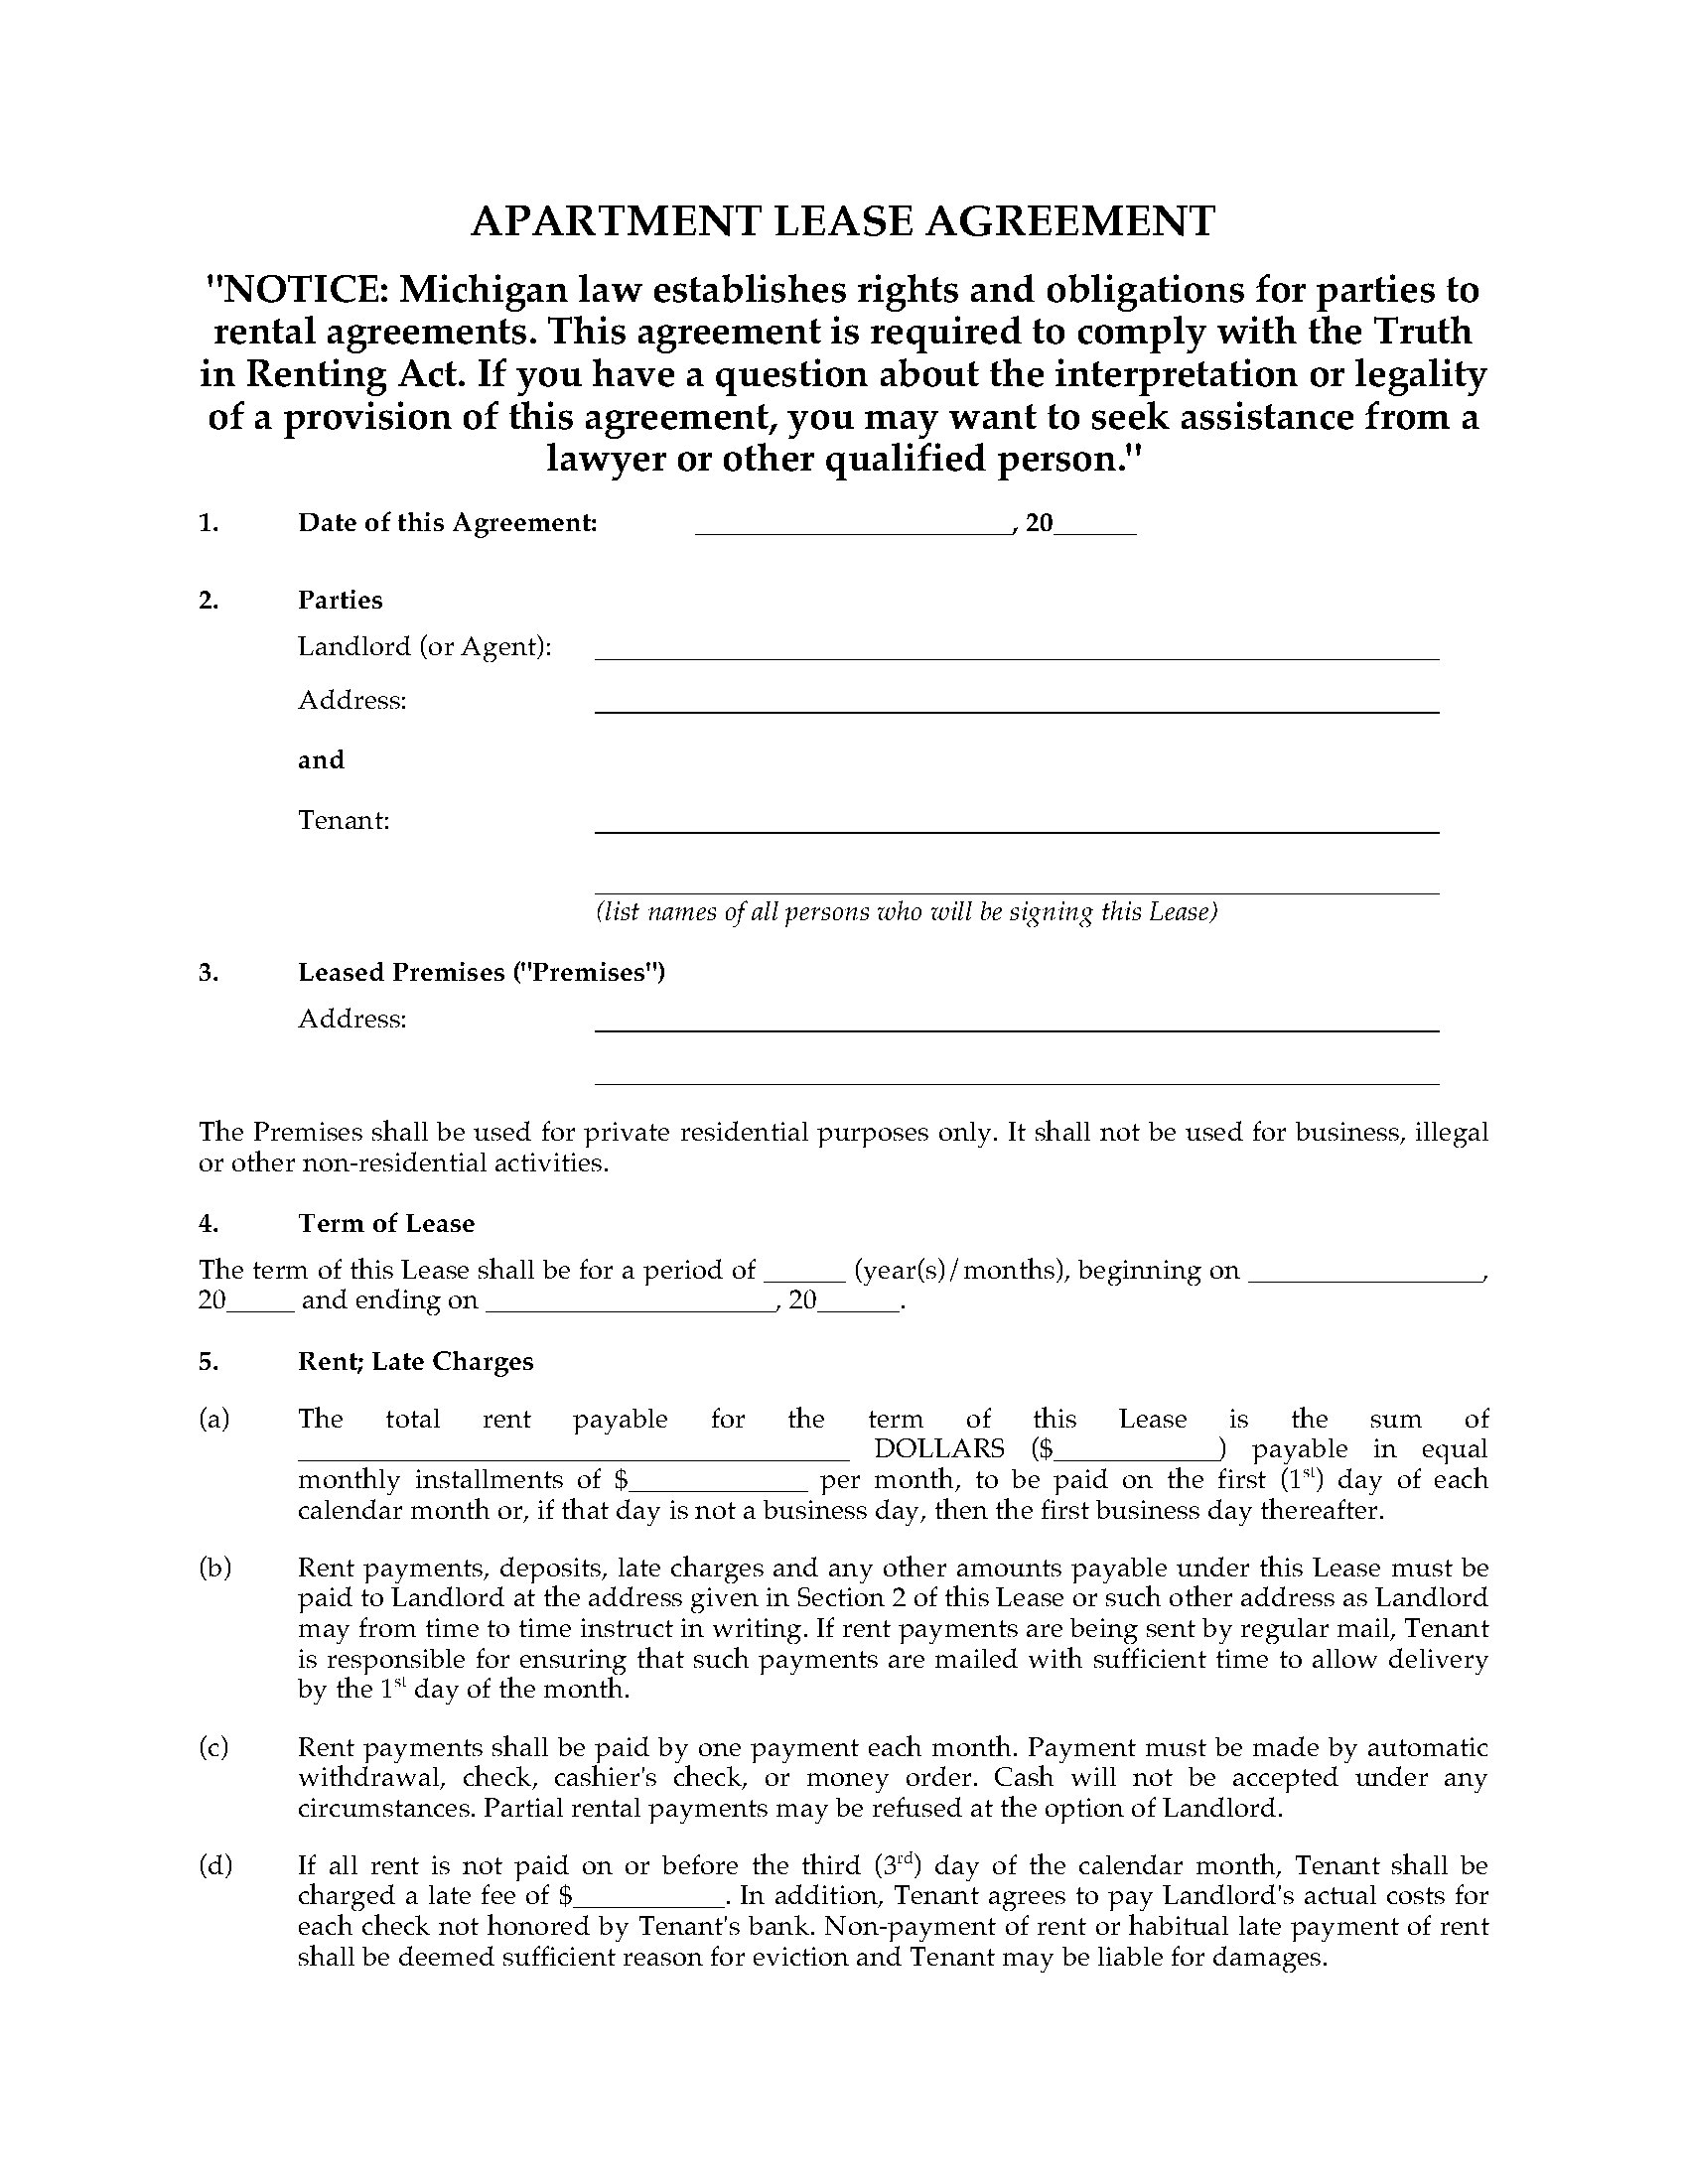 Michigan apartment lease agreement legal forms and business picture of michigan apartment lease agreement platinumwayz